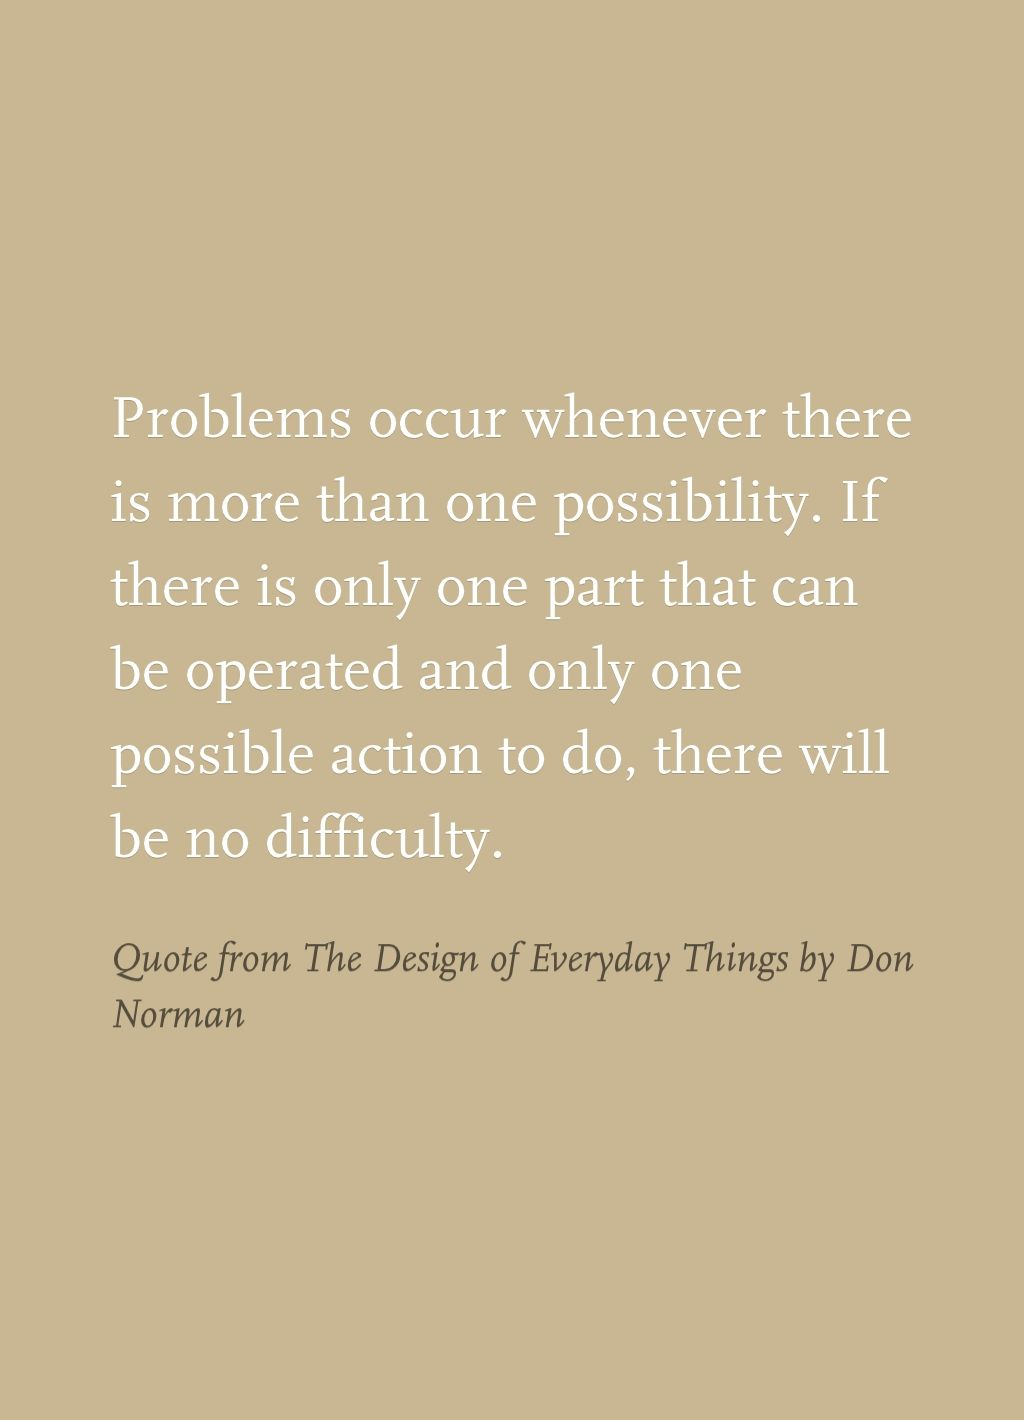 quote from the design of everyday things by don norman